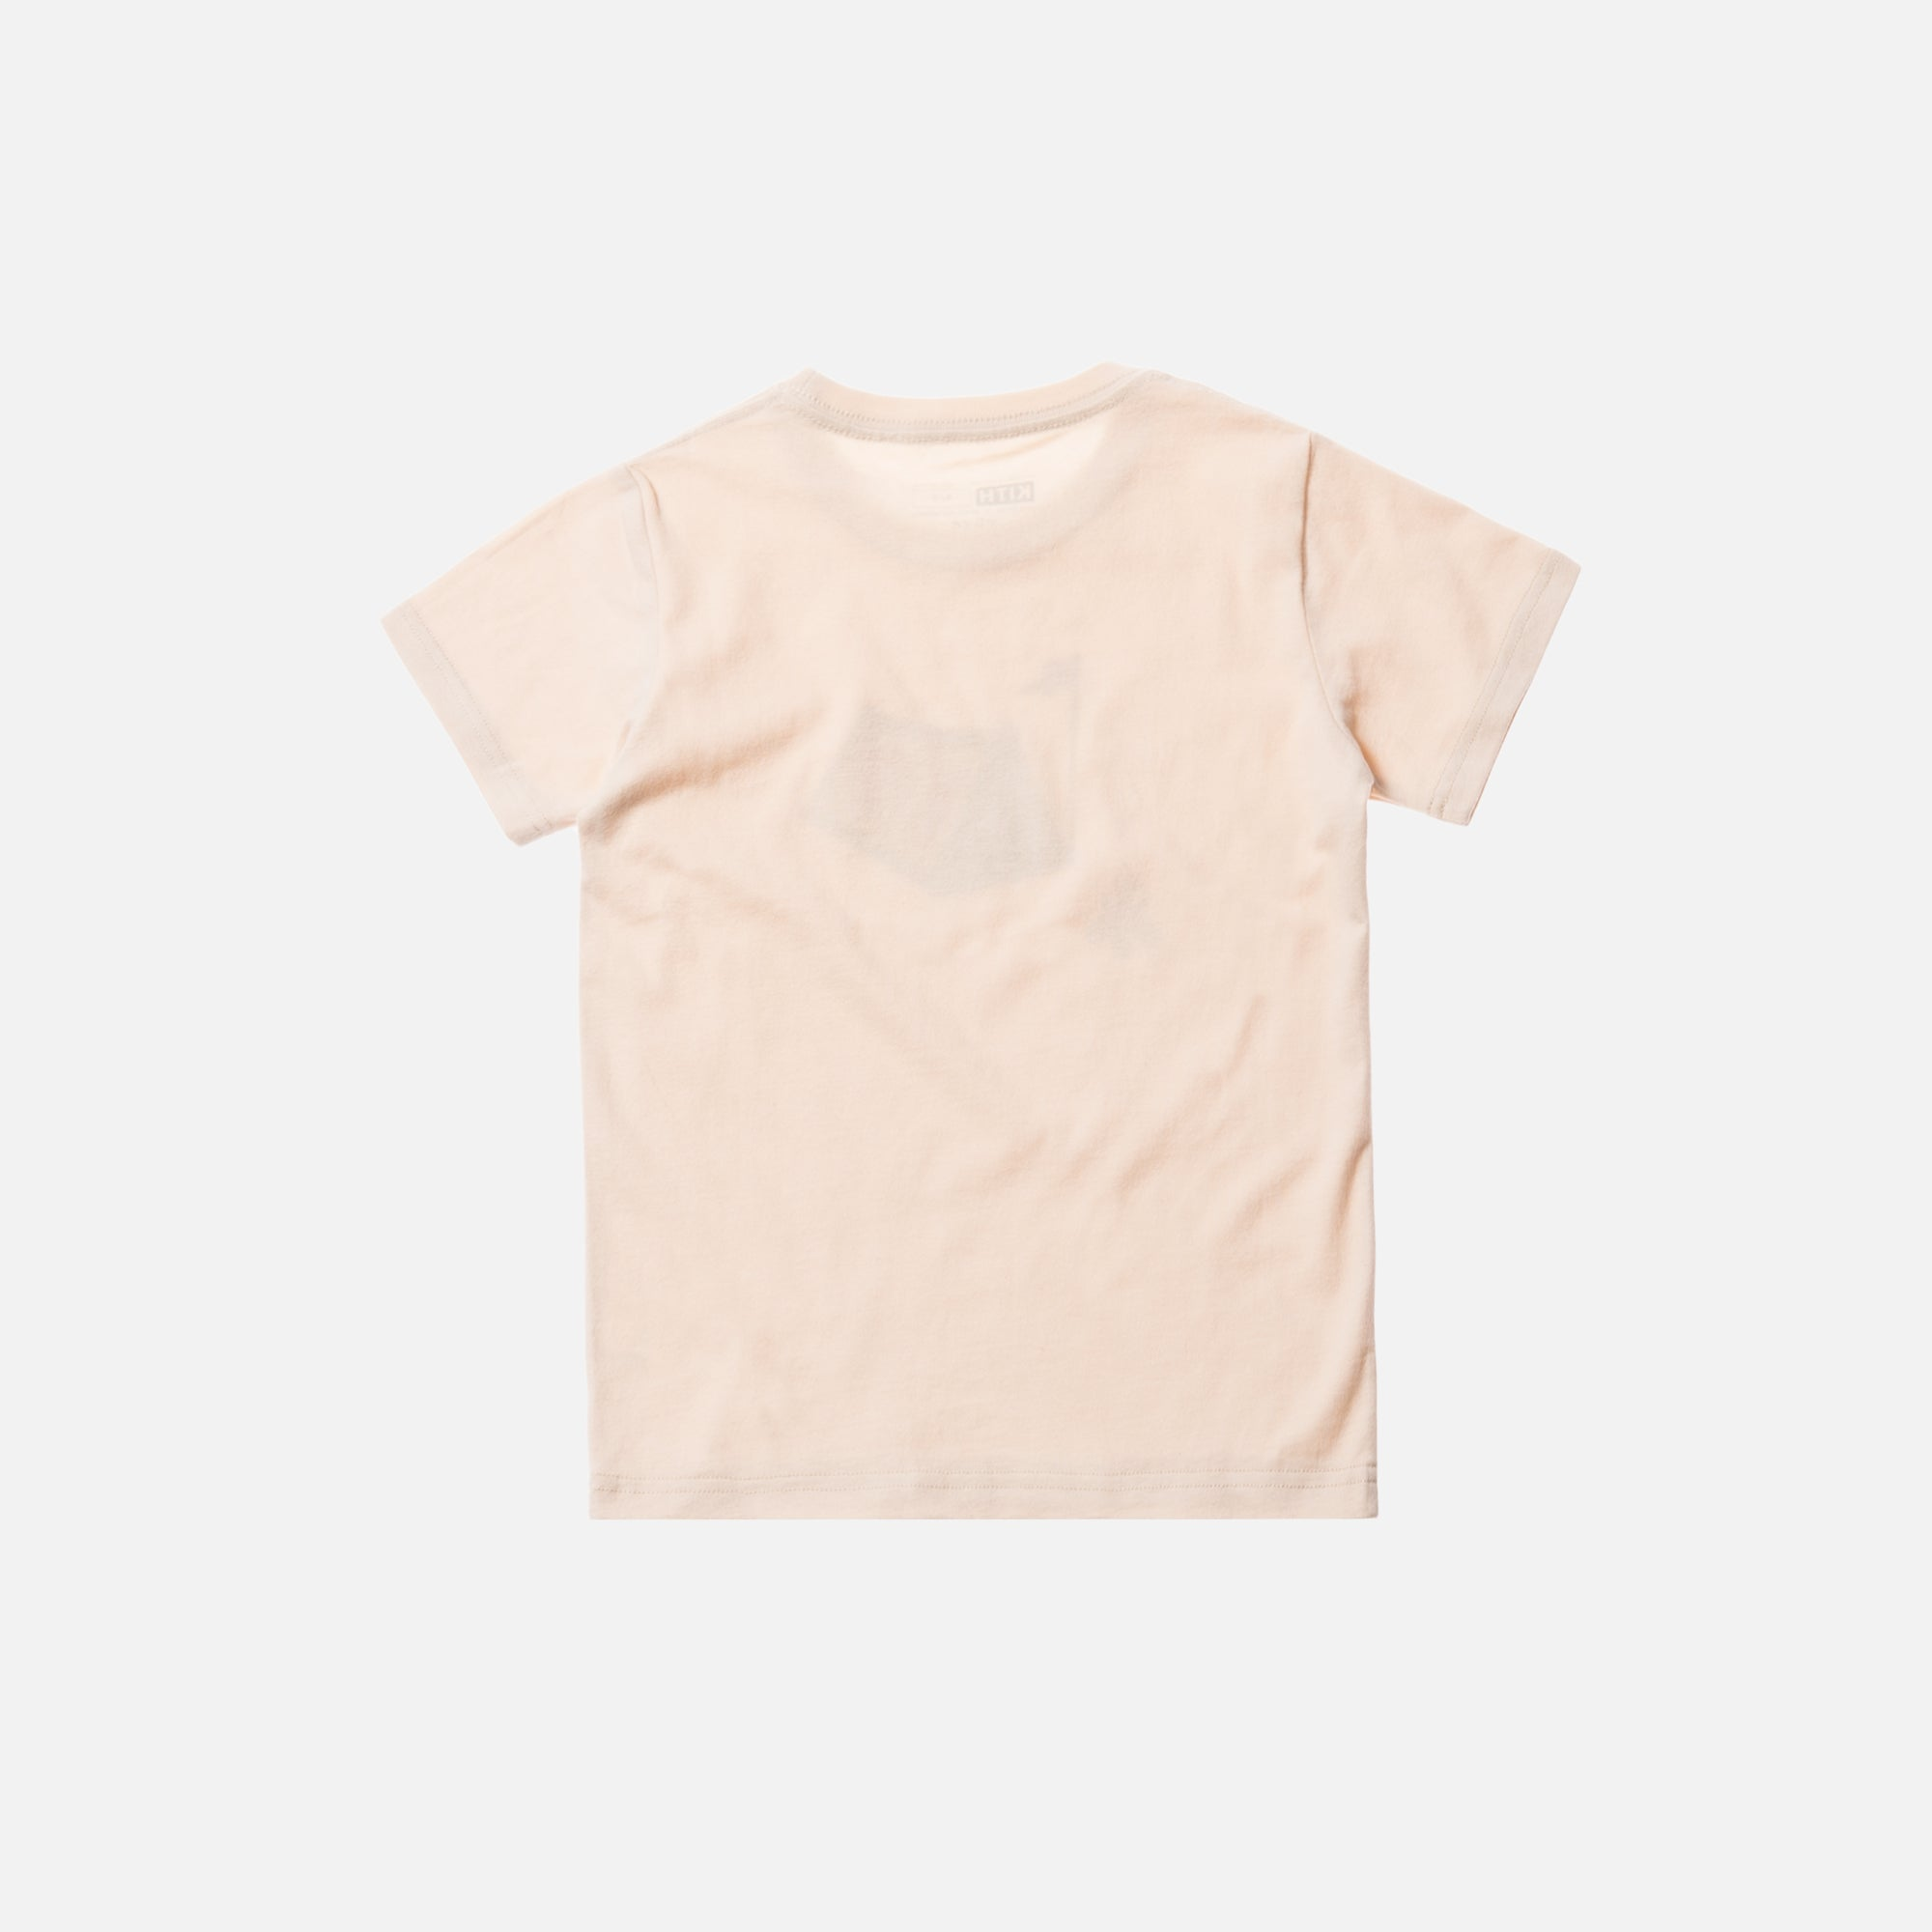 Kids Camp Out Tee - Ivory